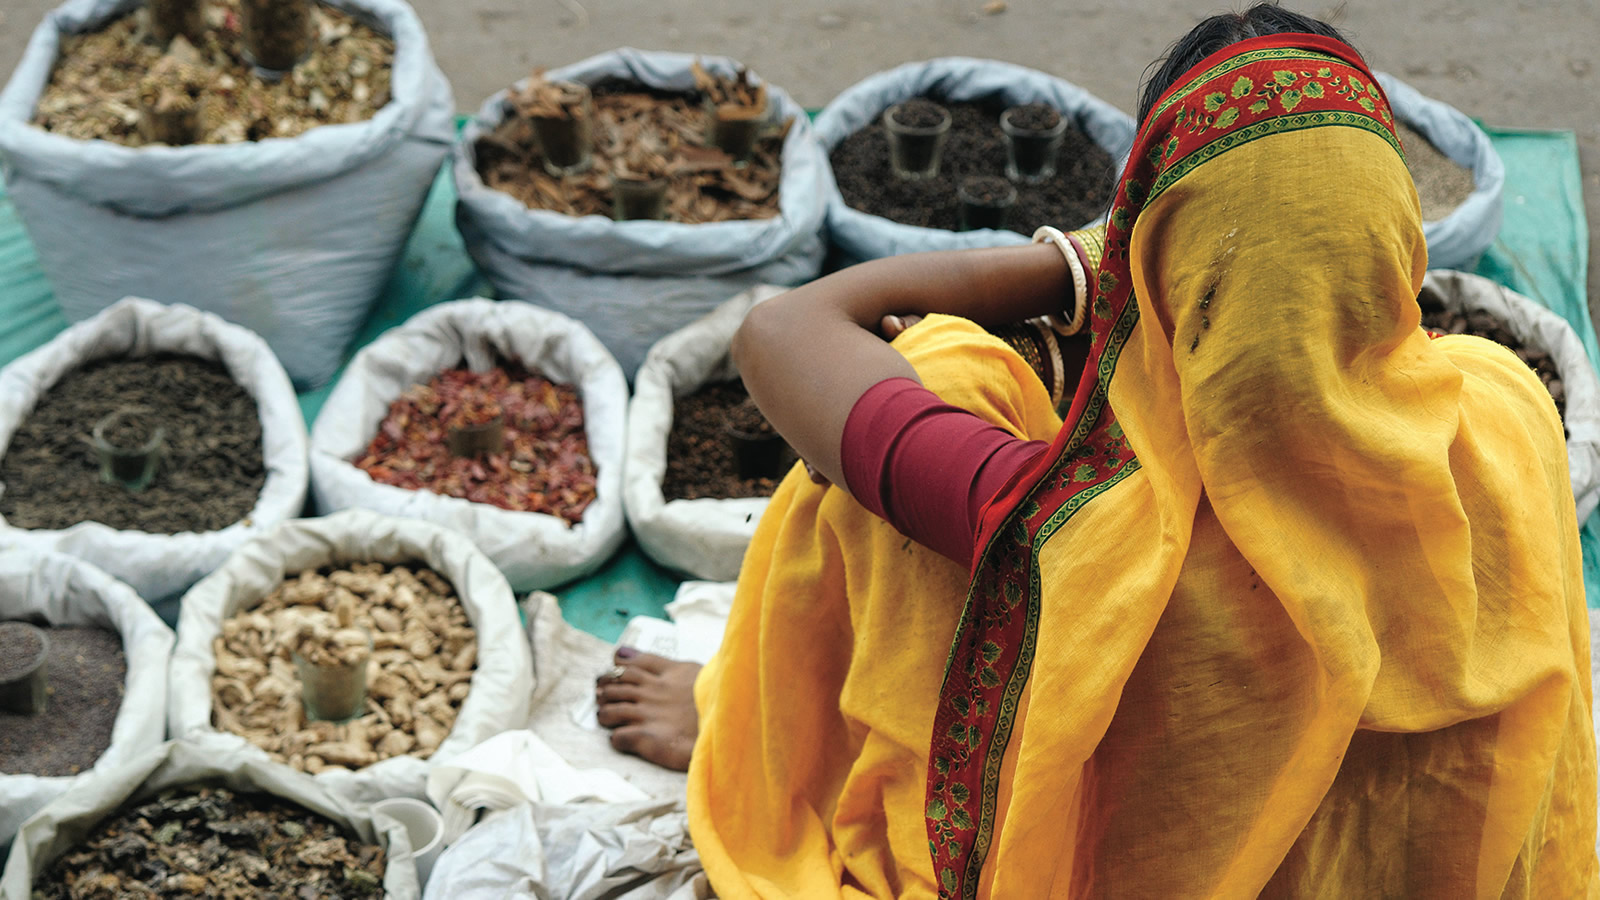 Indian Woman in Yellow Sari Sitting on Bags of Spices